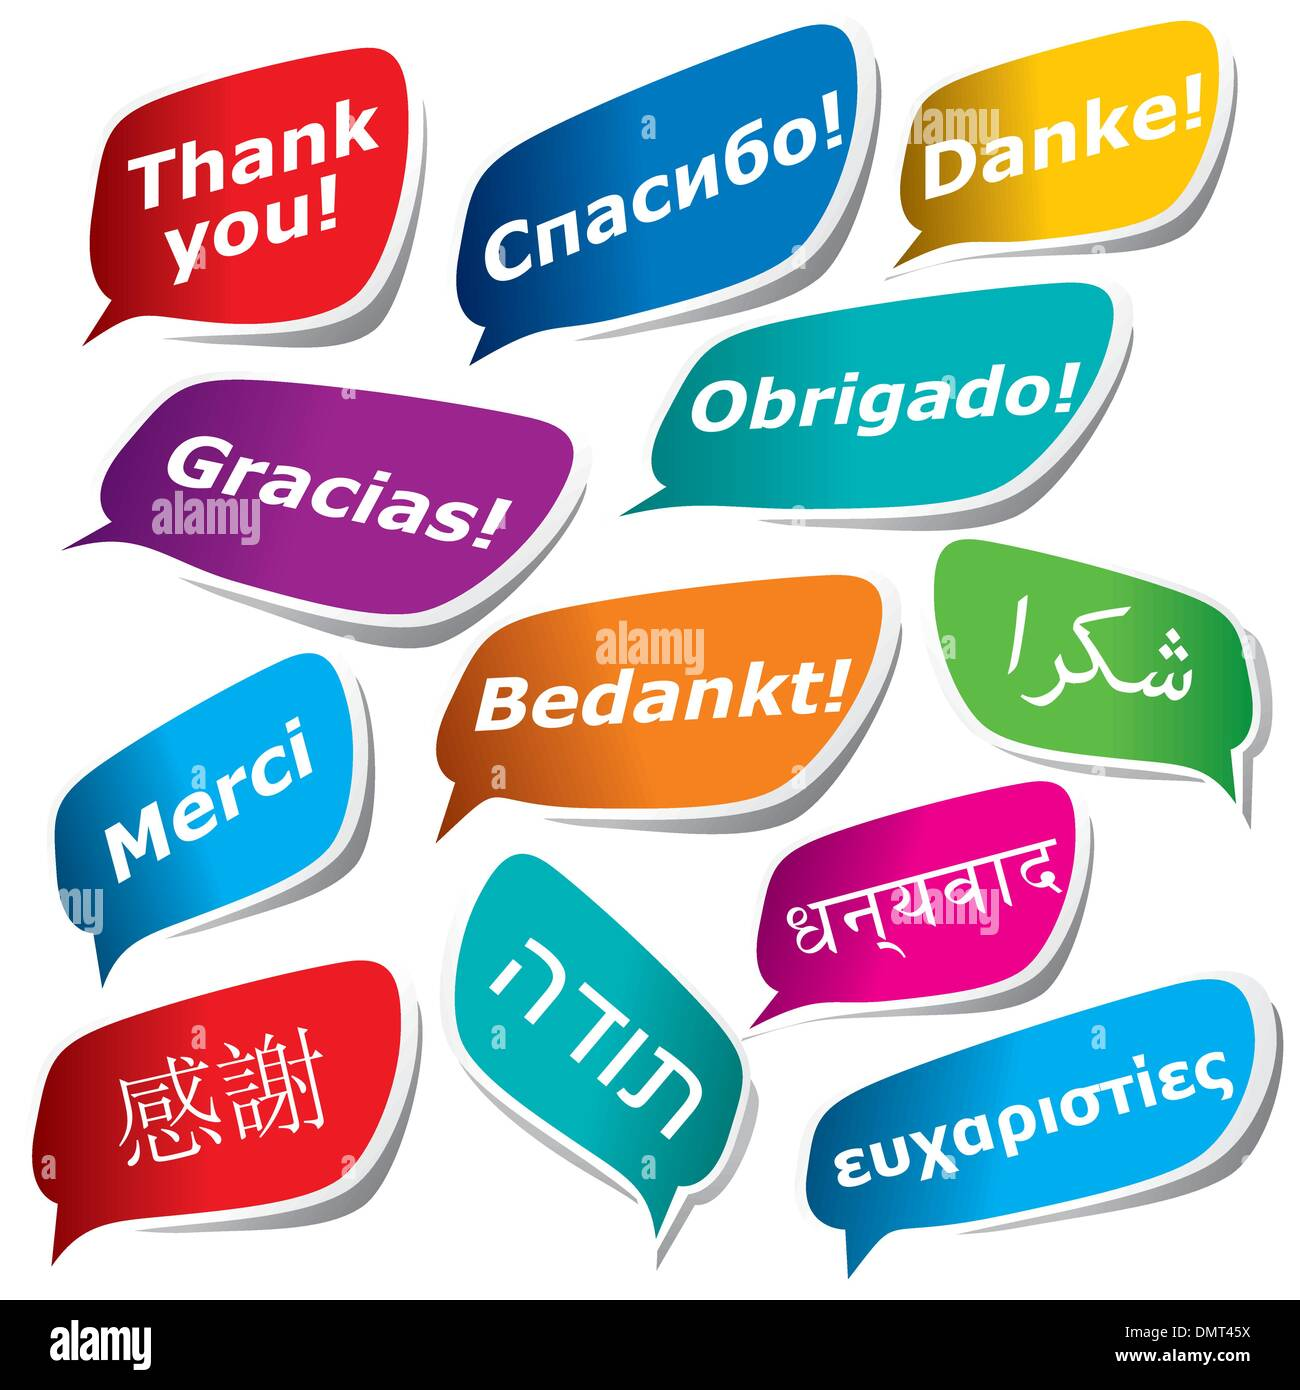 12 ways to say Thank You - Stock Image